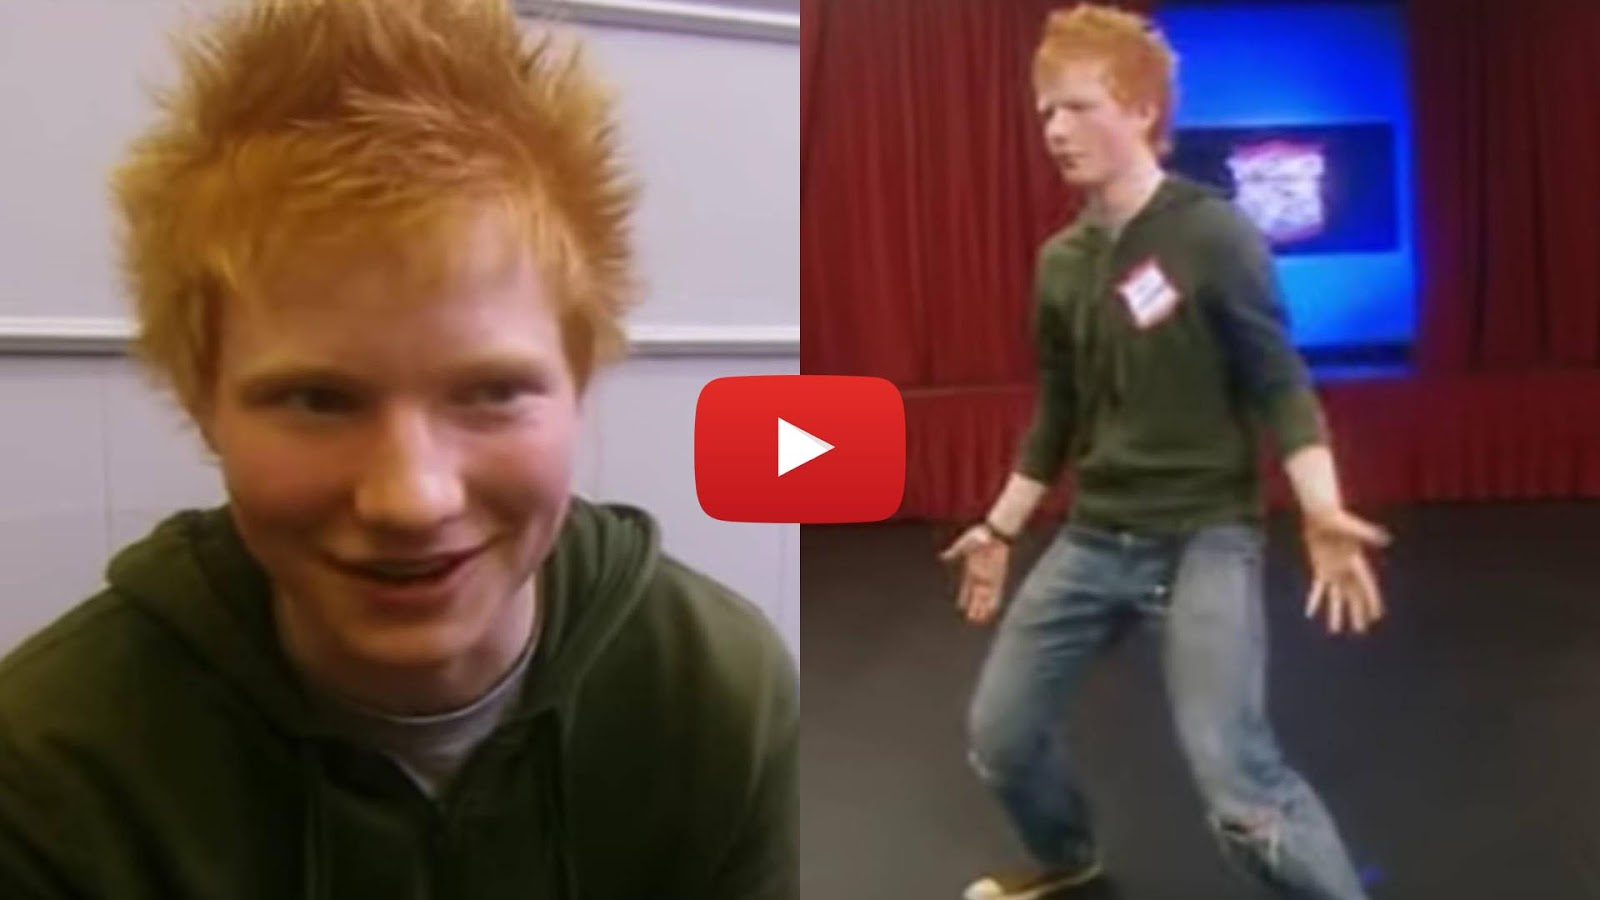 16 Year-Old Ed Sheeran auditions for Britannia High (2007) Britannia High was a short-lived UK TV series